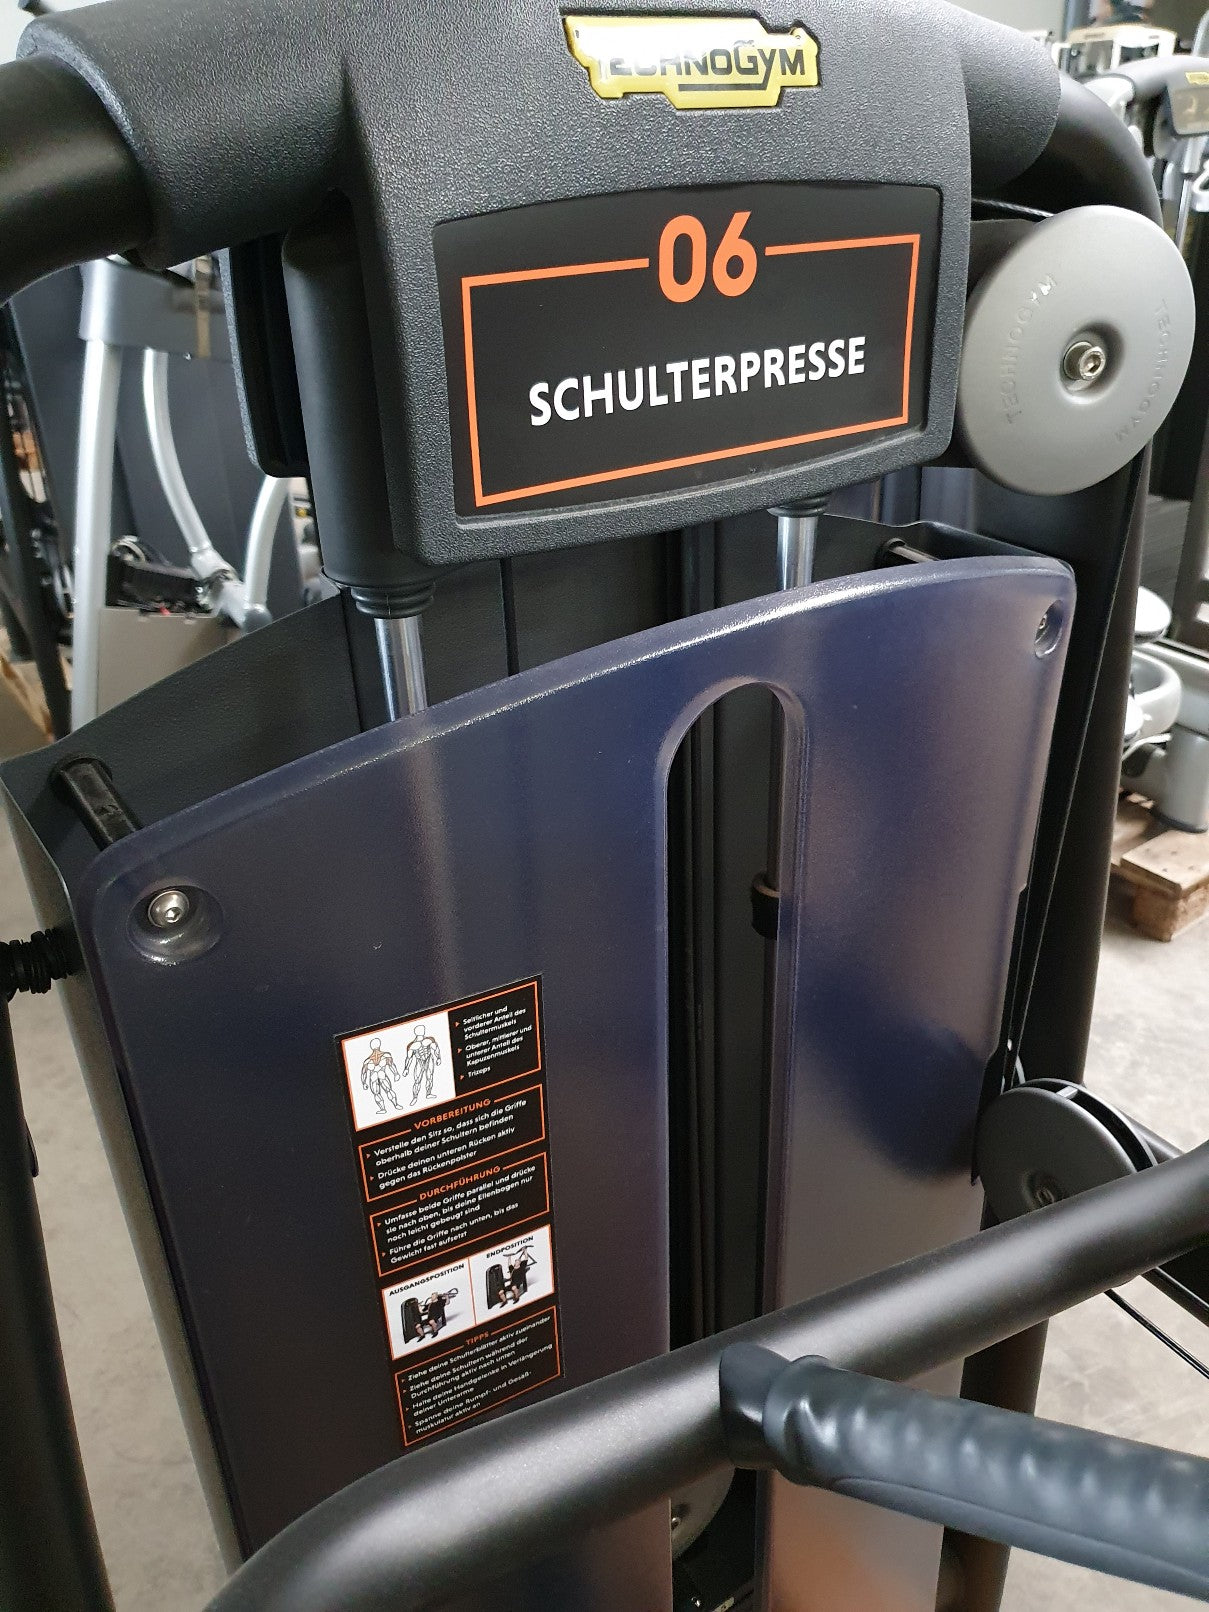 PROFI TECHNOGYM Selection Line Black Shoulder Press Schulter Presse Fitness Gym